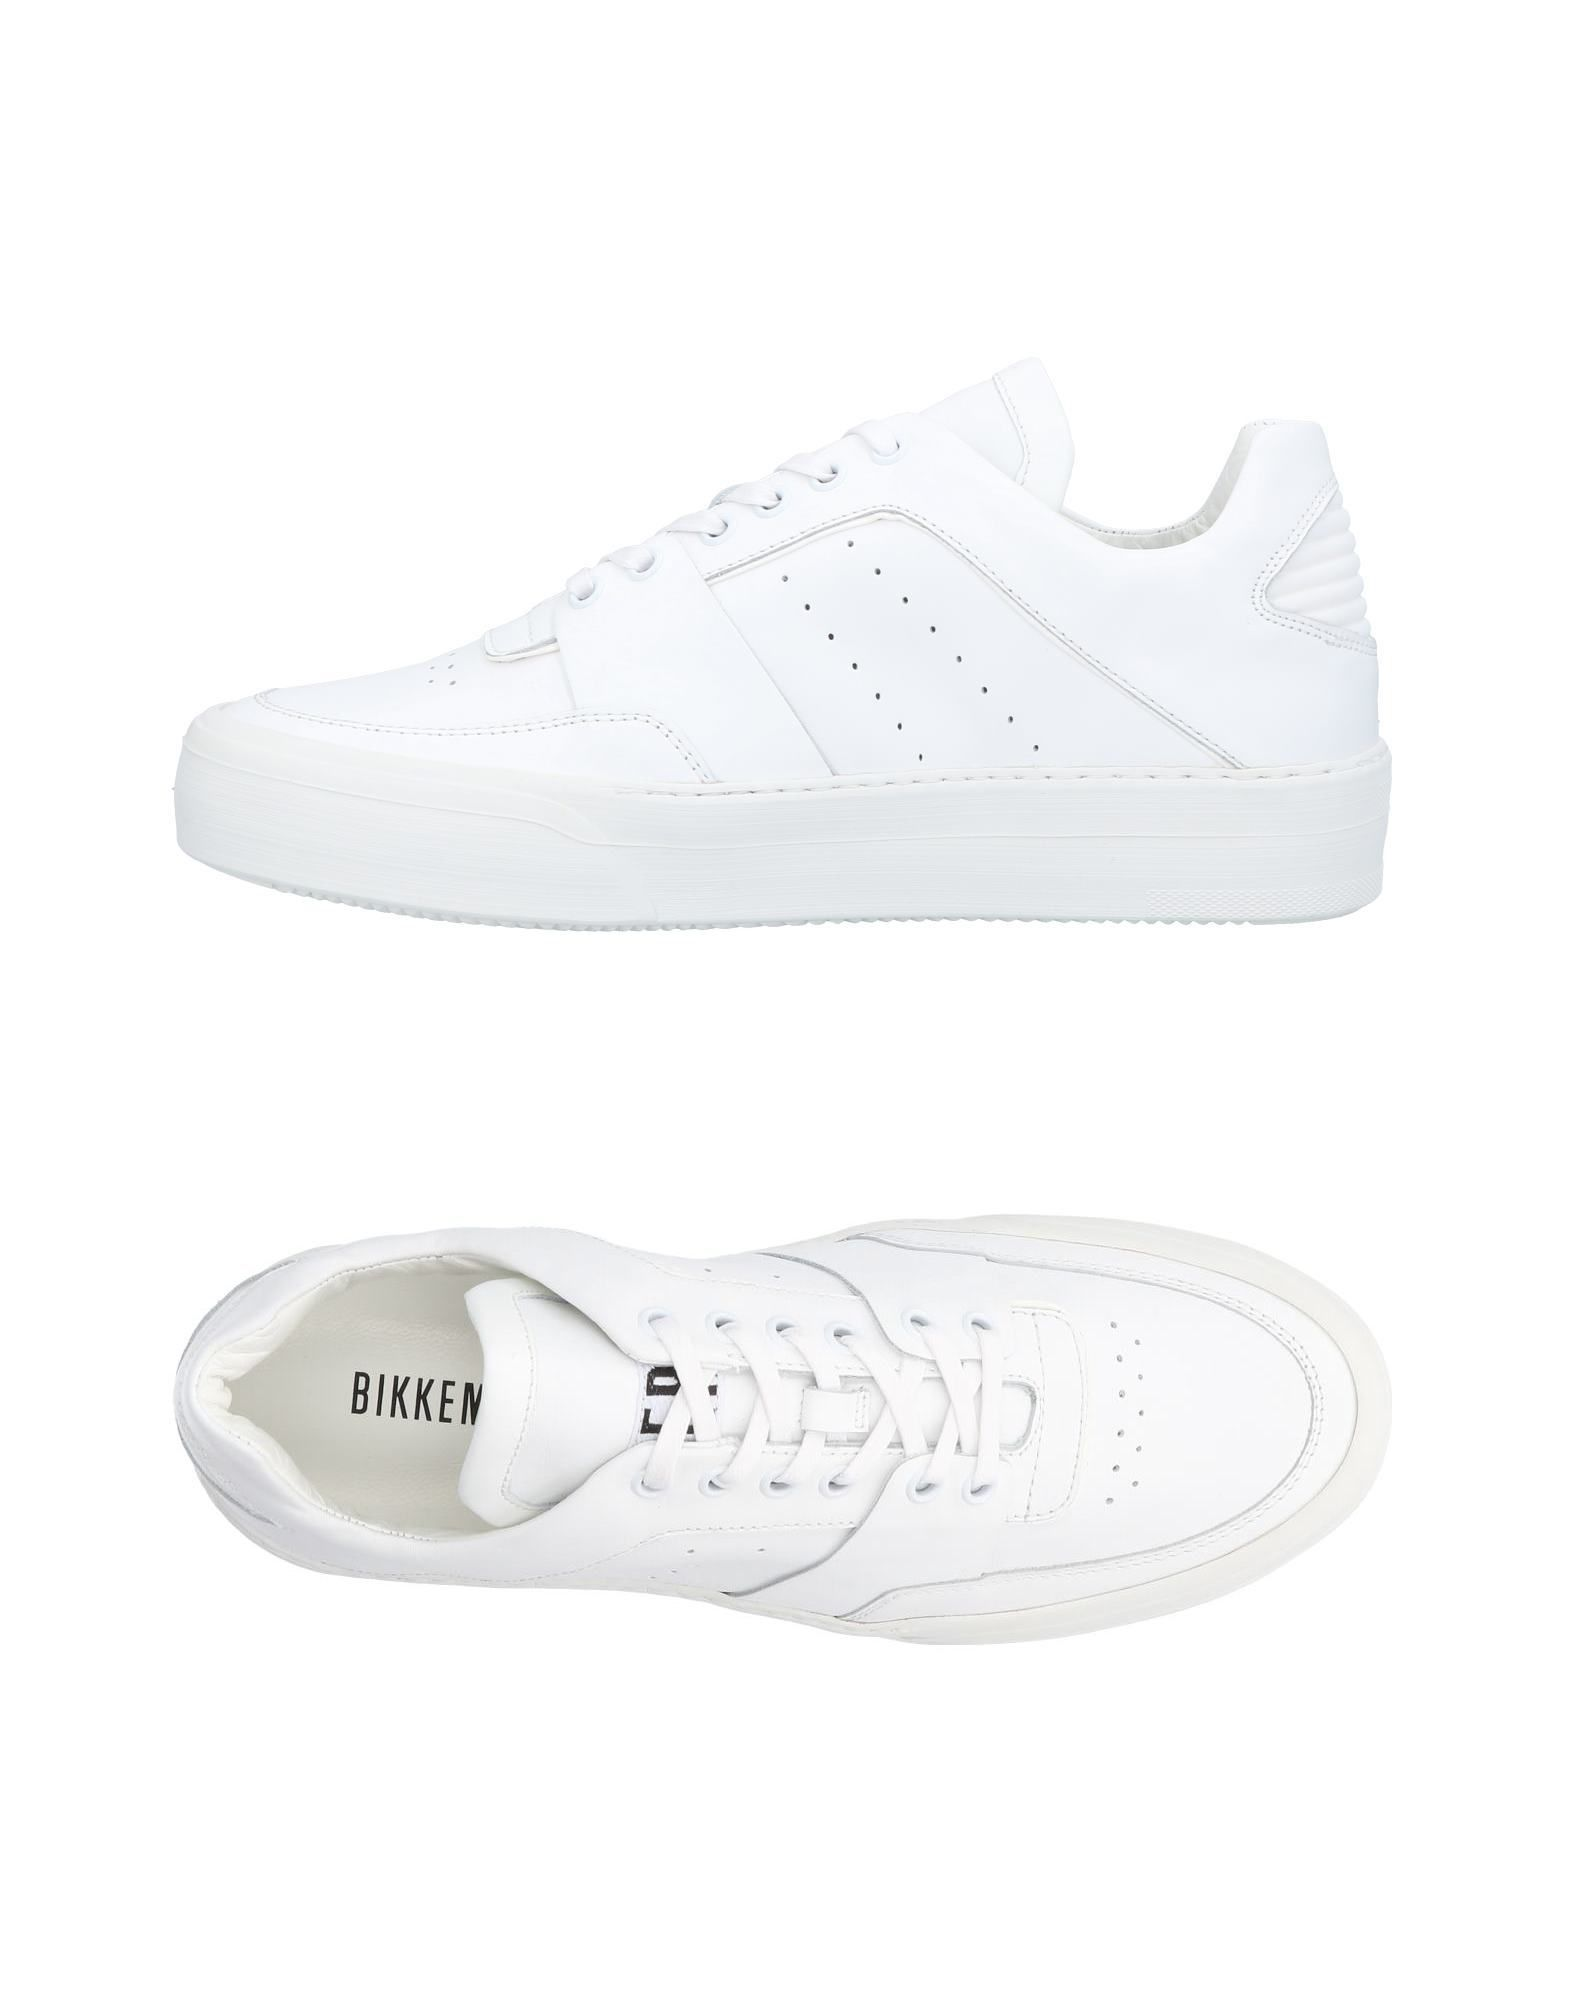 Bikkembergs on Sneakers - Men Bikkembergs Sneakers online on Bikkembergs  Australia - 11451028PD b588af